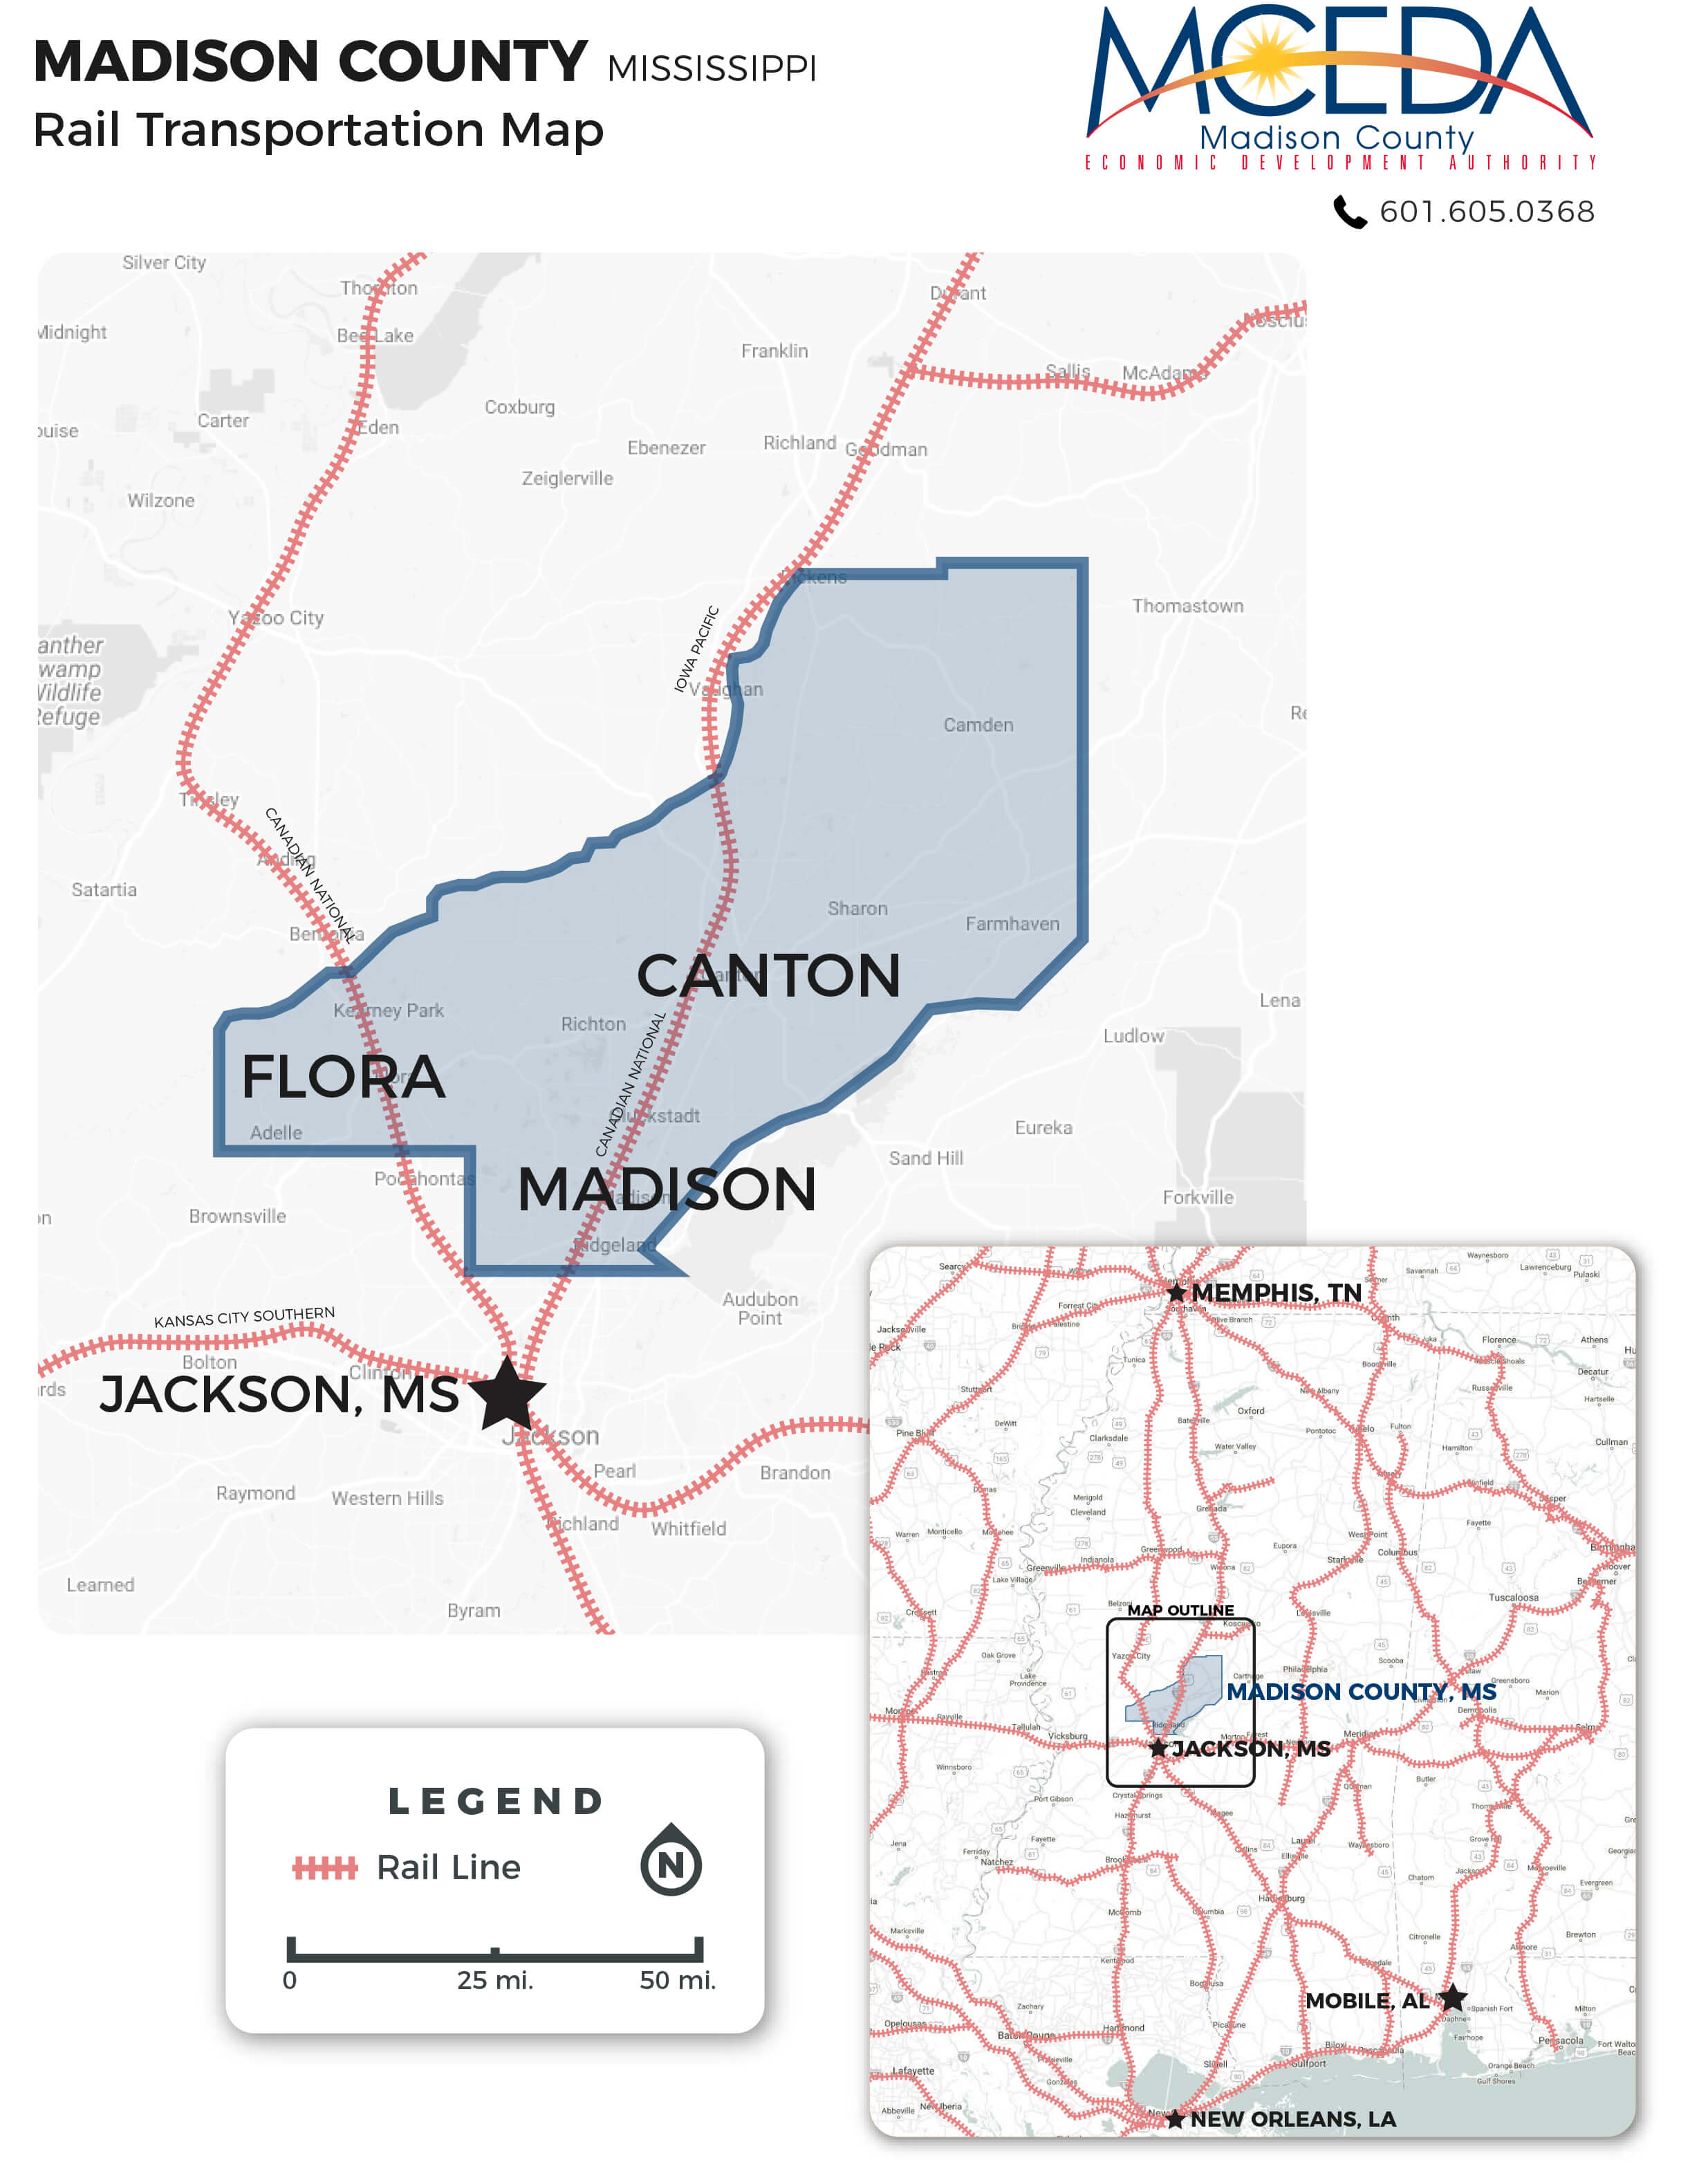 Cudowna Location & Transportation - Madison County Economic Development MV01